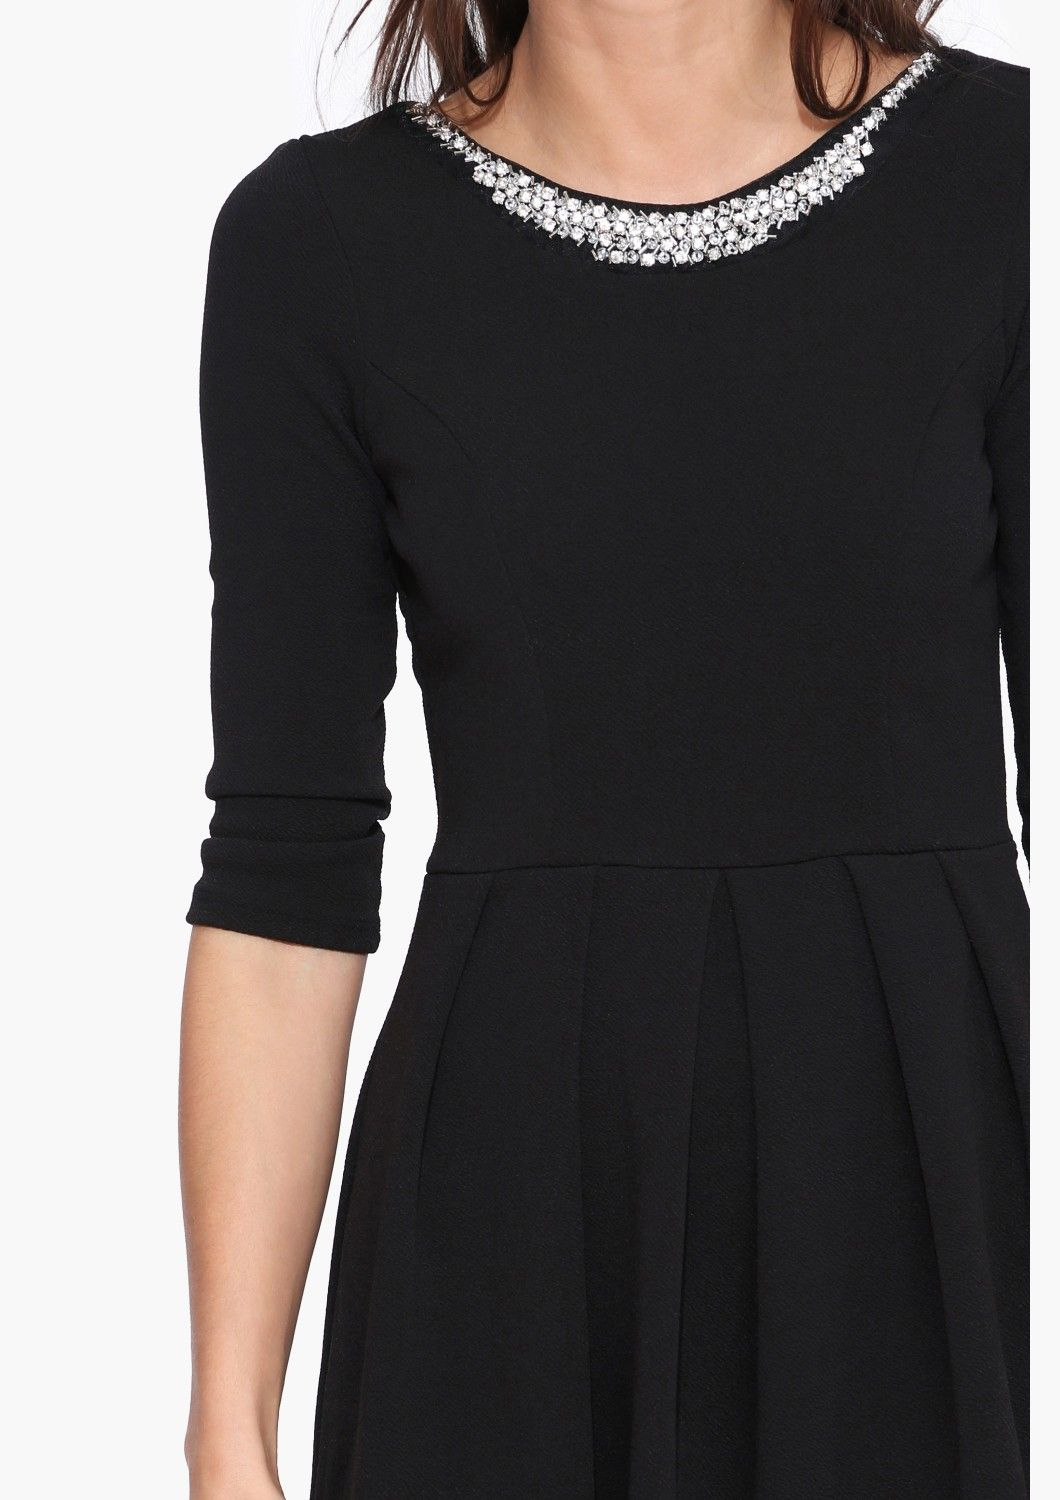 great details on this simple black dress